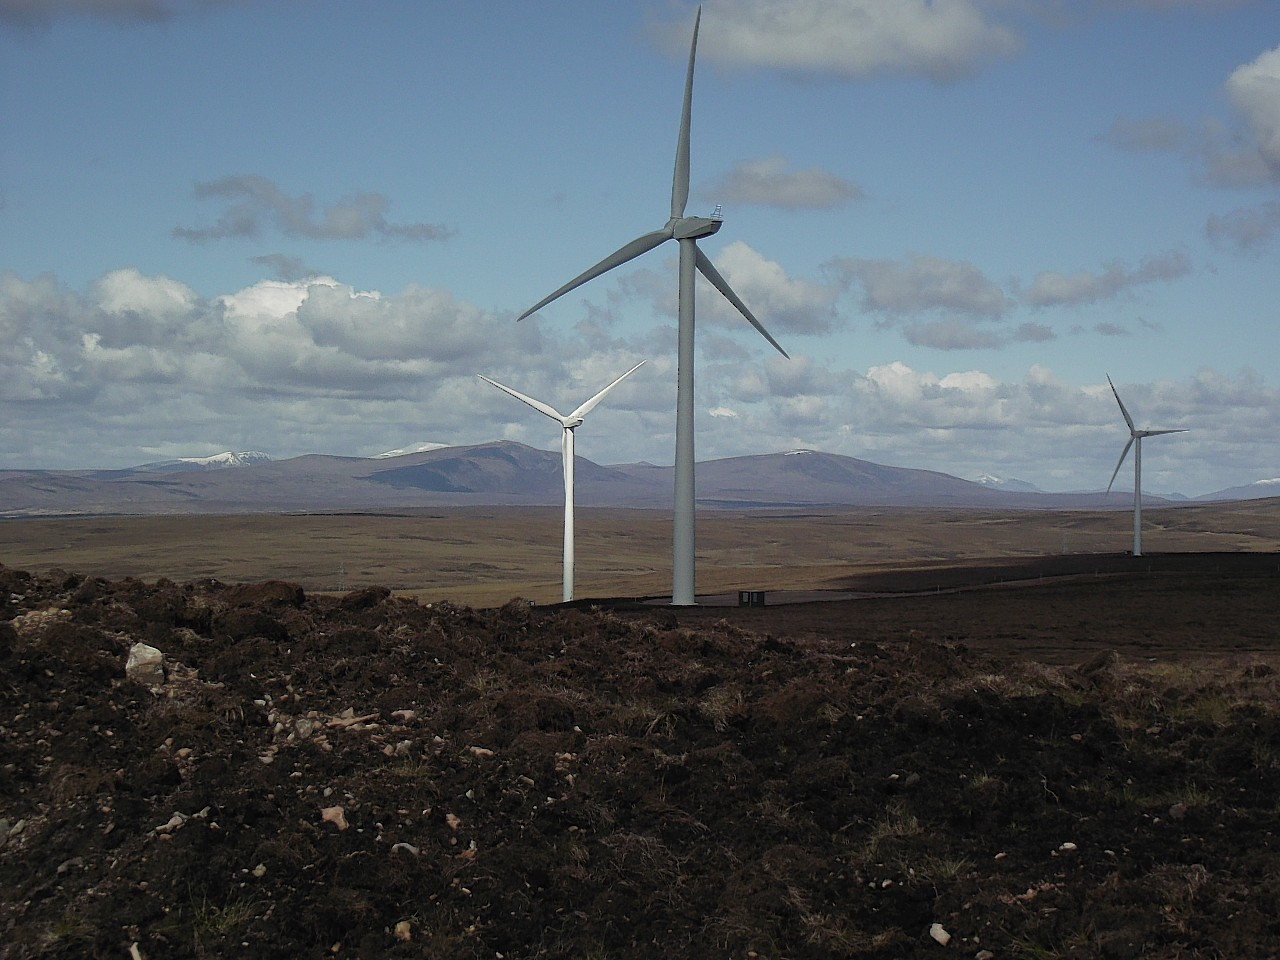 Gordonbush Windfarm, near the proposed Kintradwell site